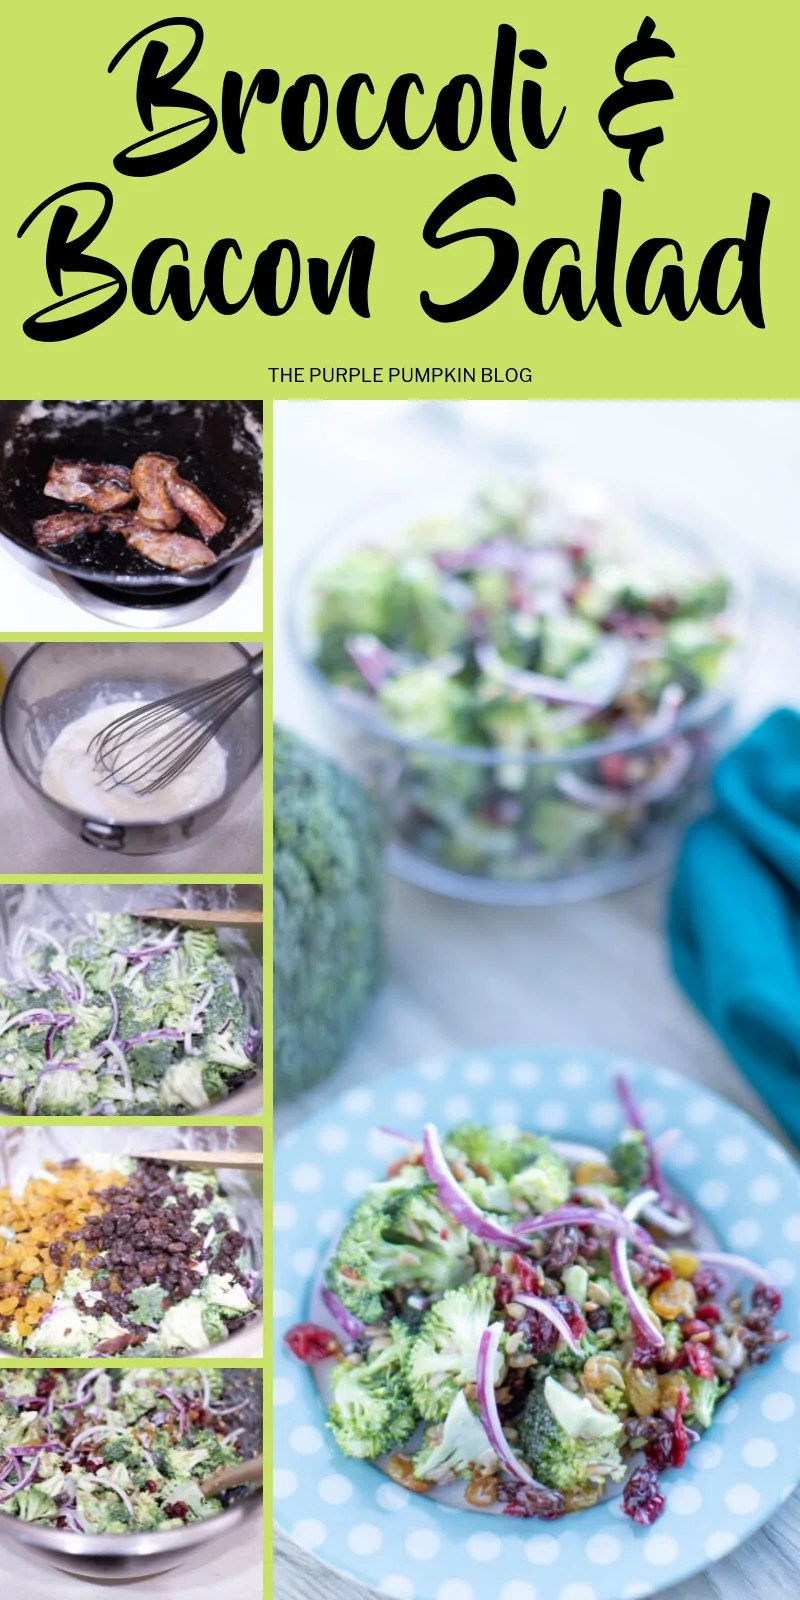 Photos showing the steps to making loaded broccoli bacon salad.